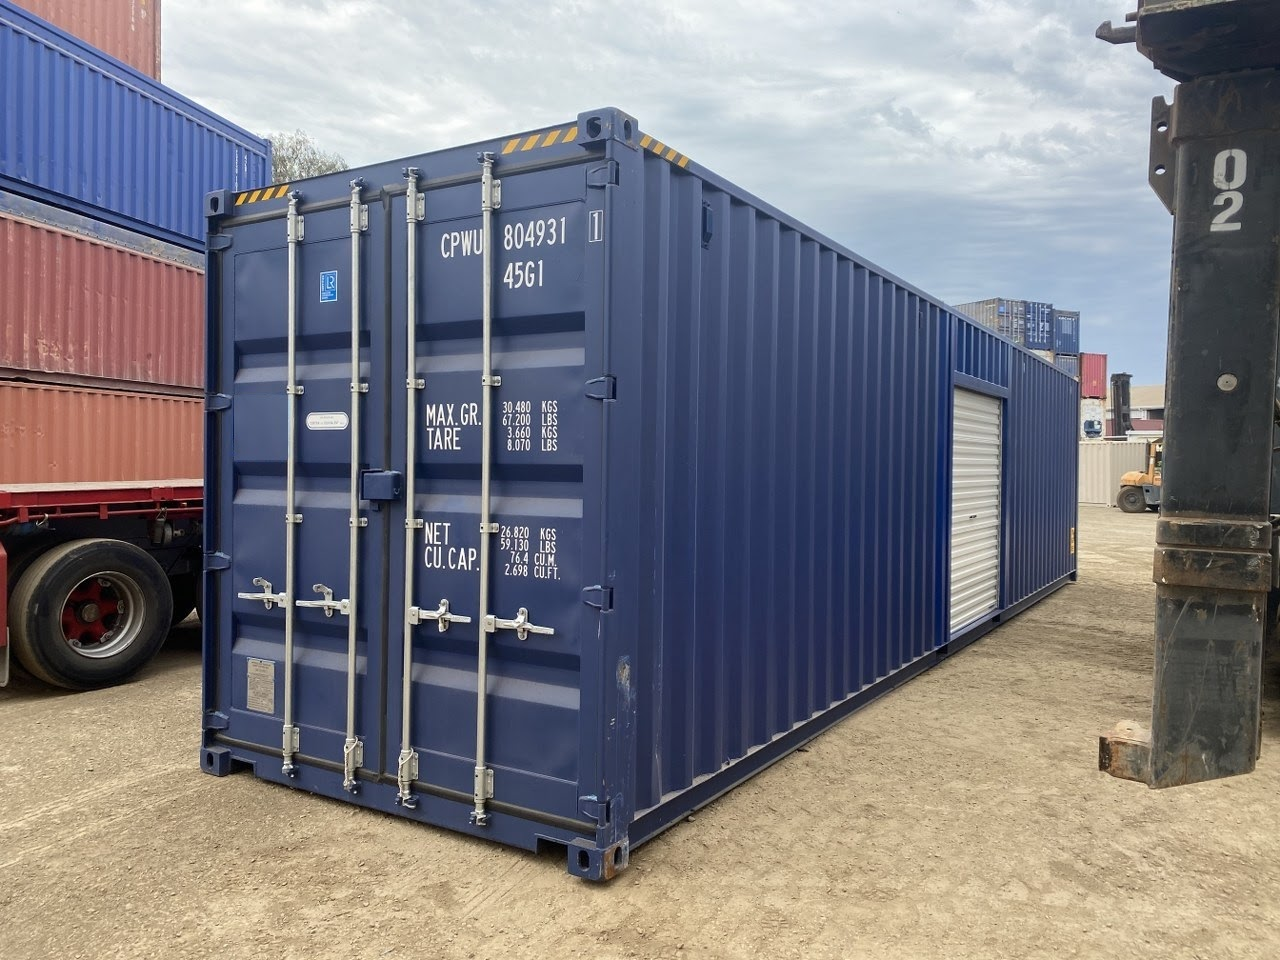 40 foot modified shipping containers